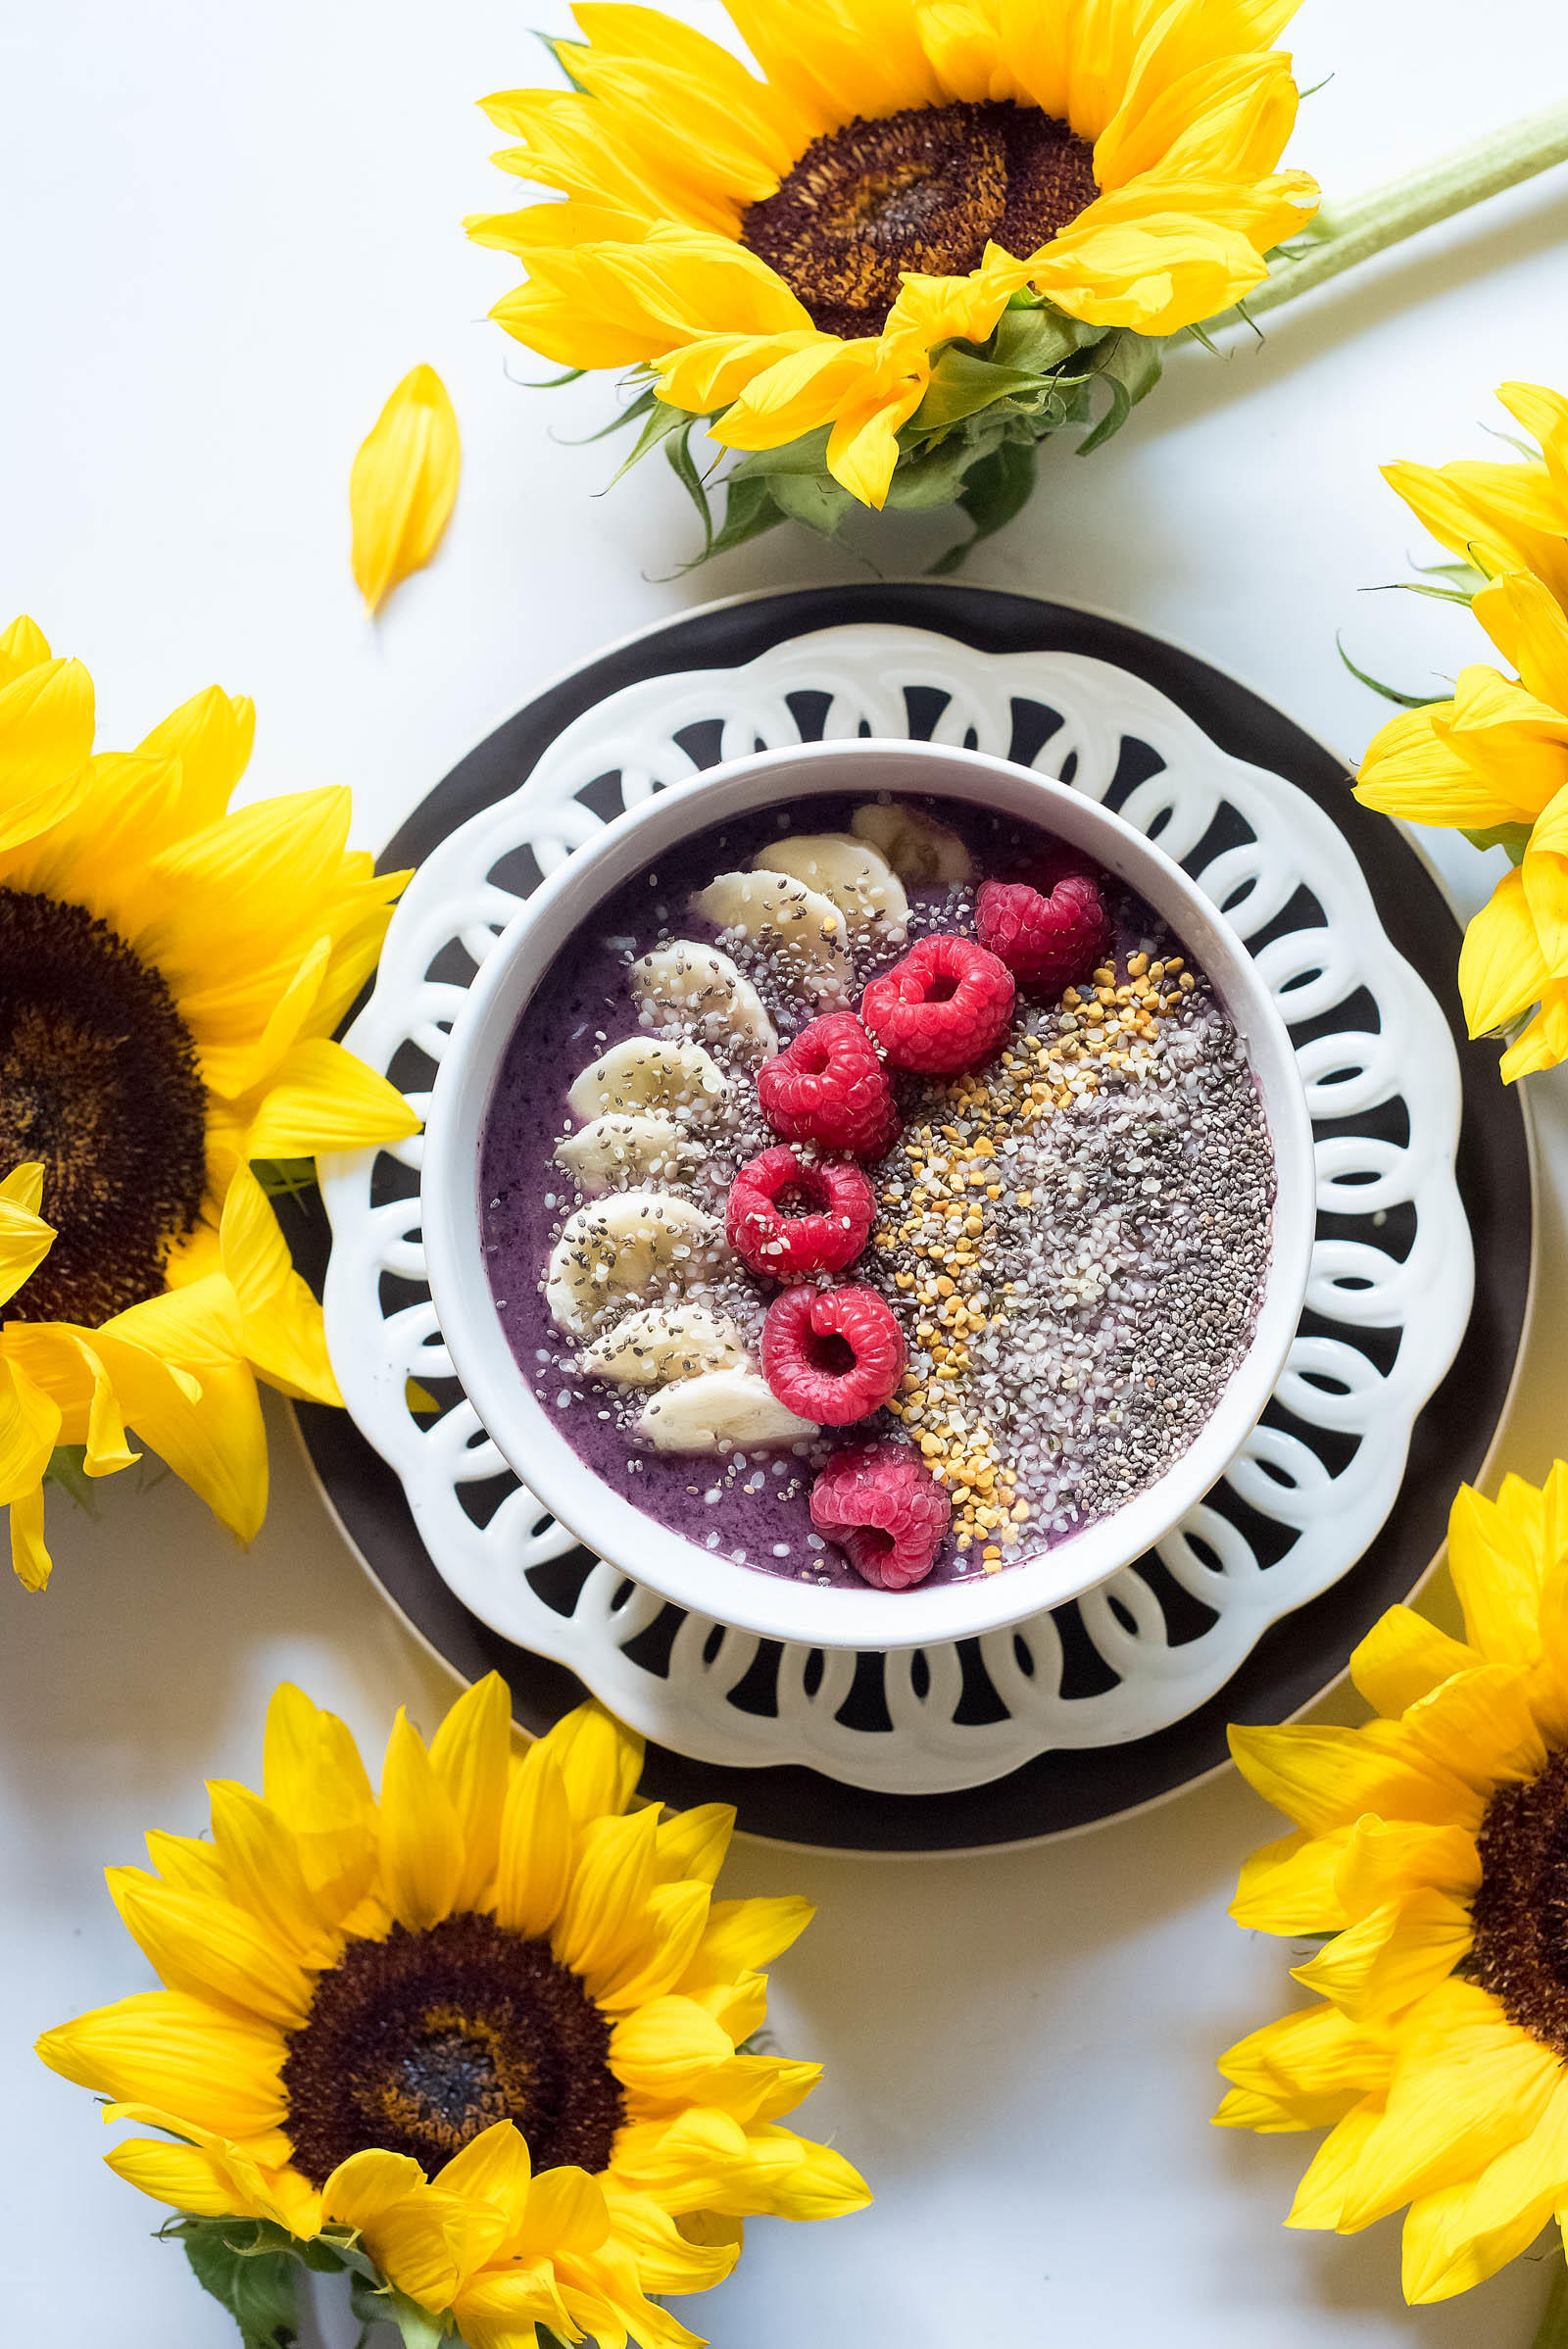 Brain Dust Acai Blueberry Smoothie Bowl Bee Pollen